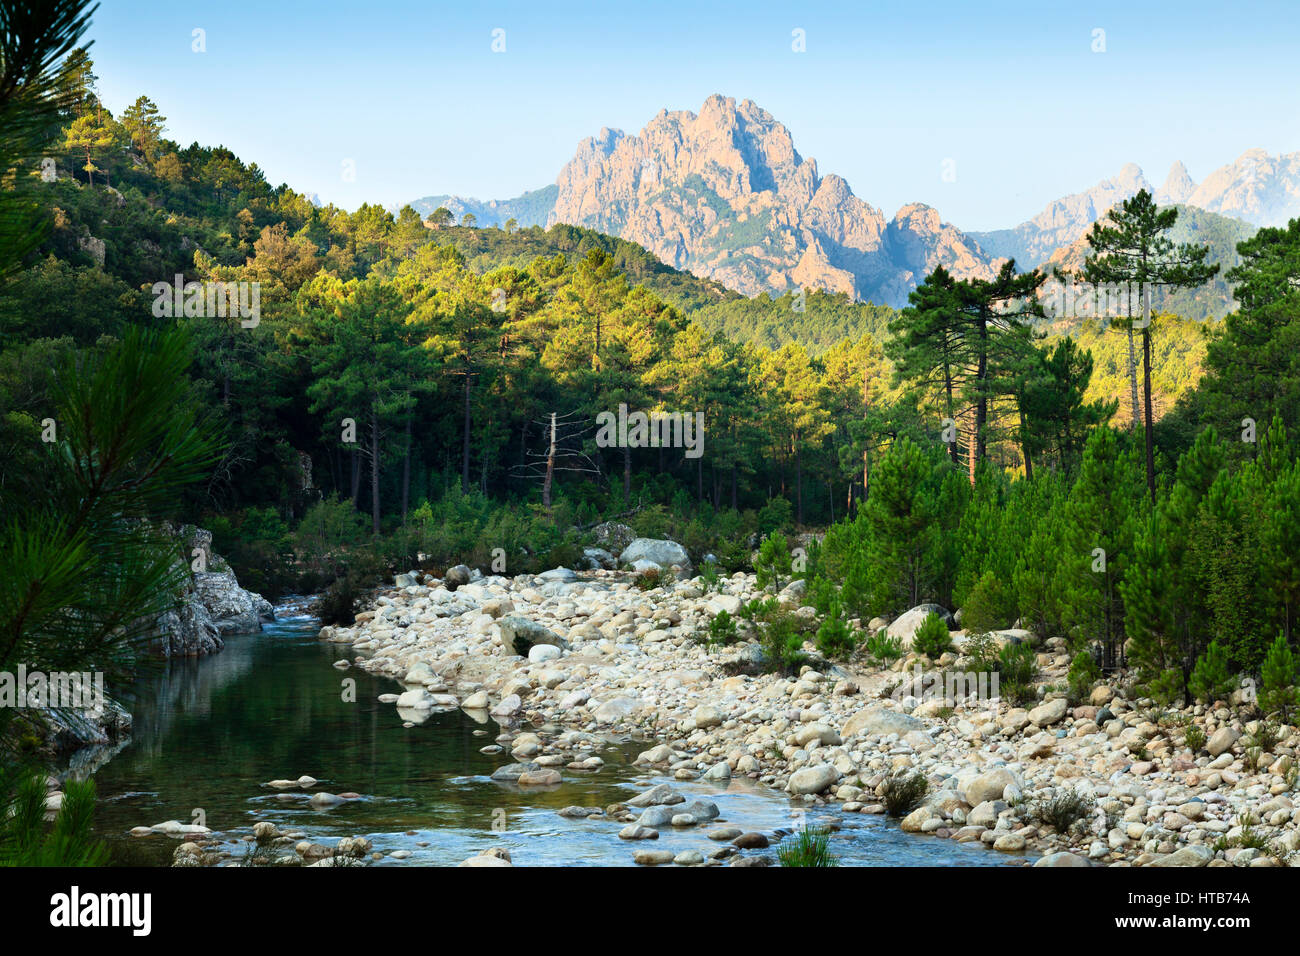 Mountains of Bavella, Corsica, France - Stock Image